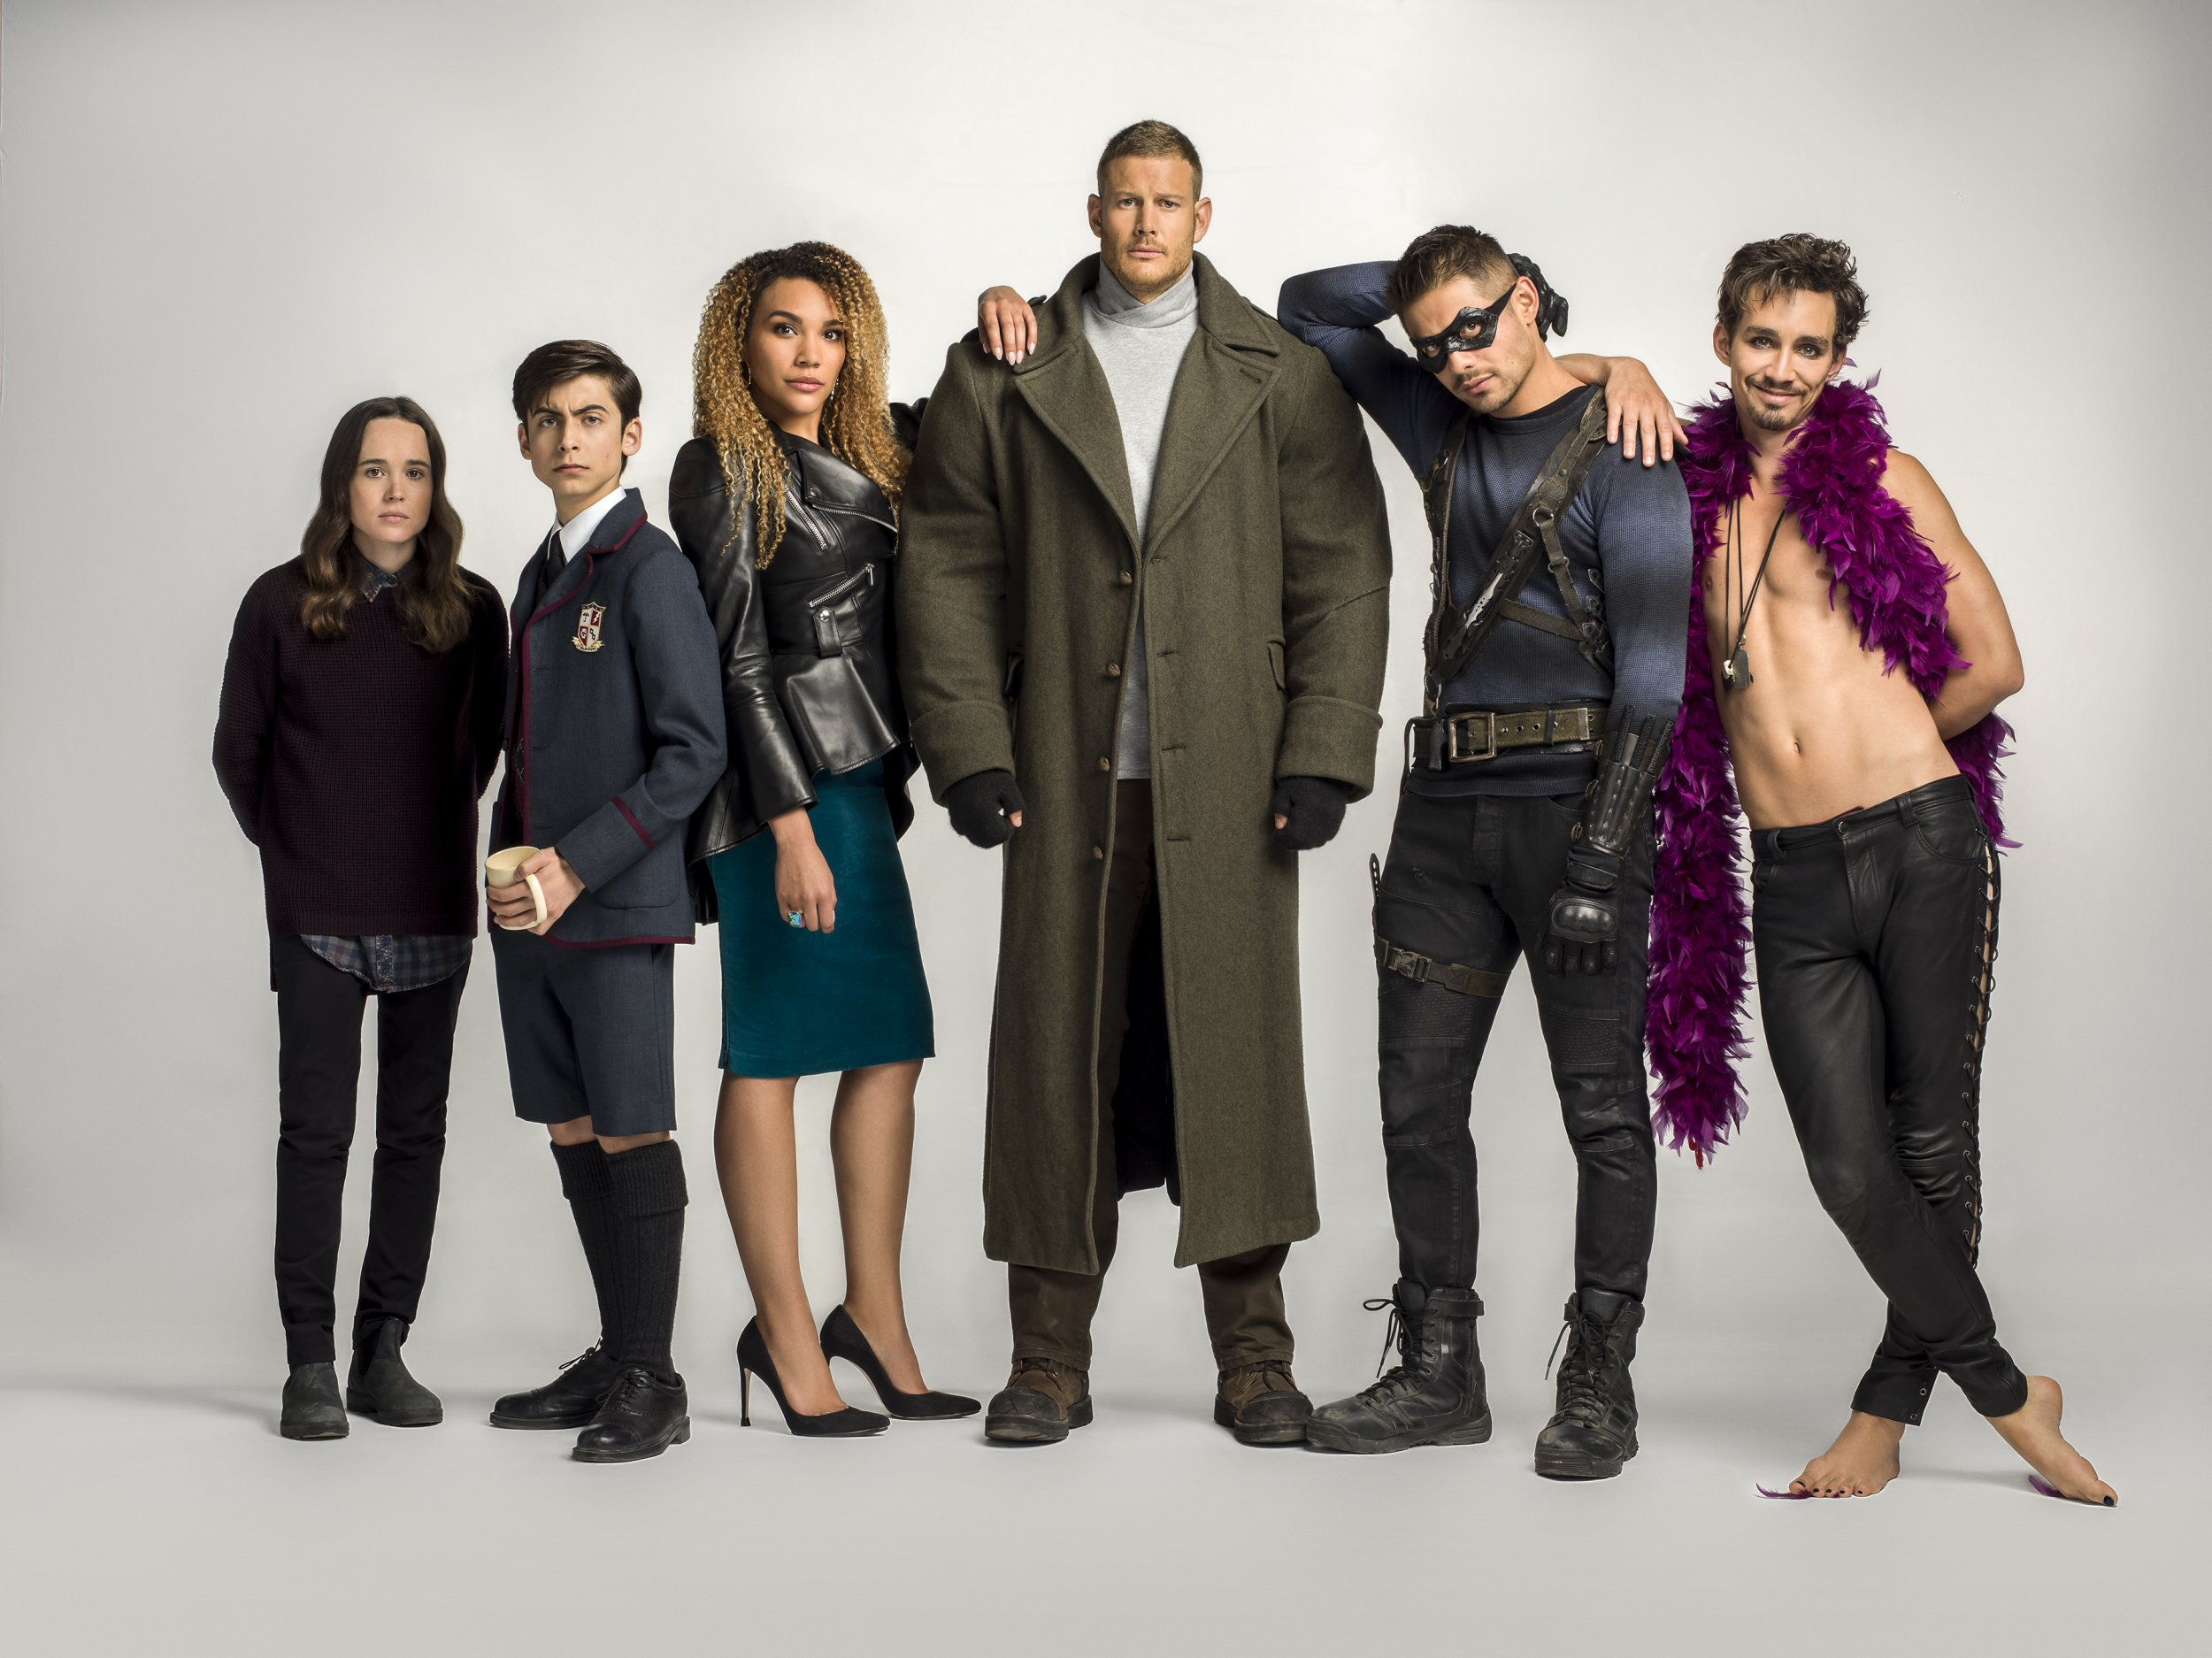 10 more Netflix shows to watch if you liked The Umbrella Academy